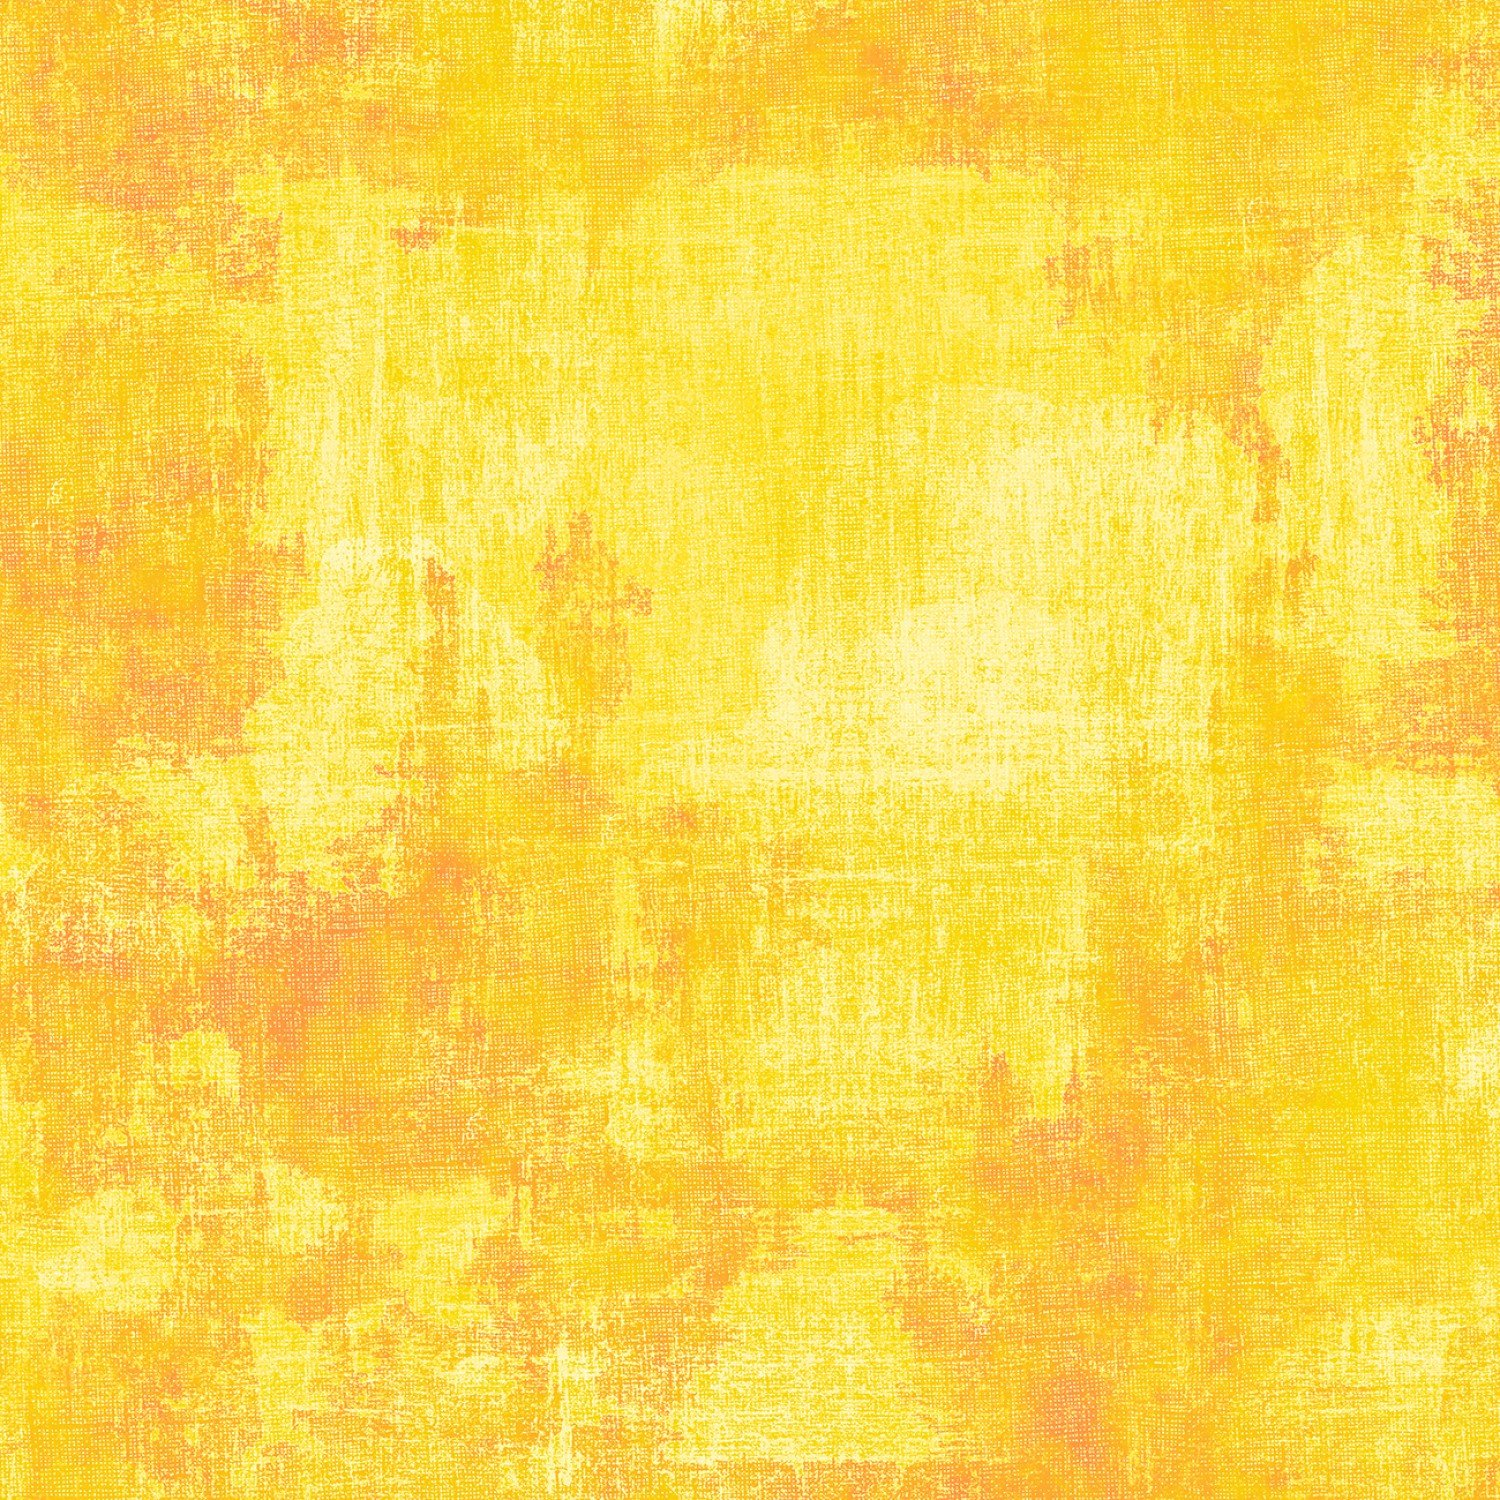 Yellow Dry Brush